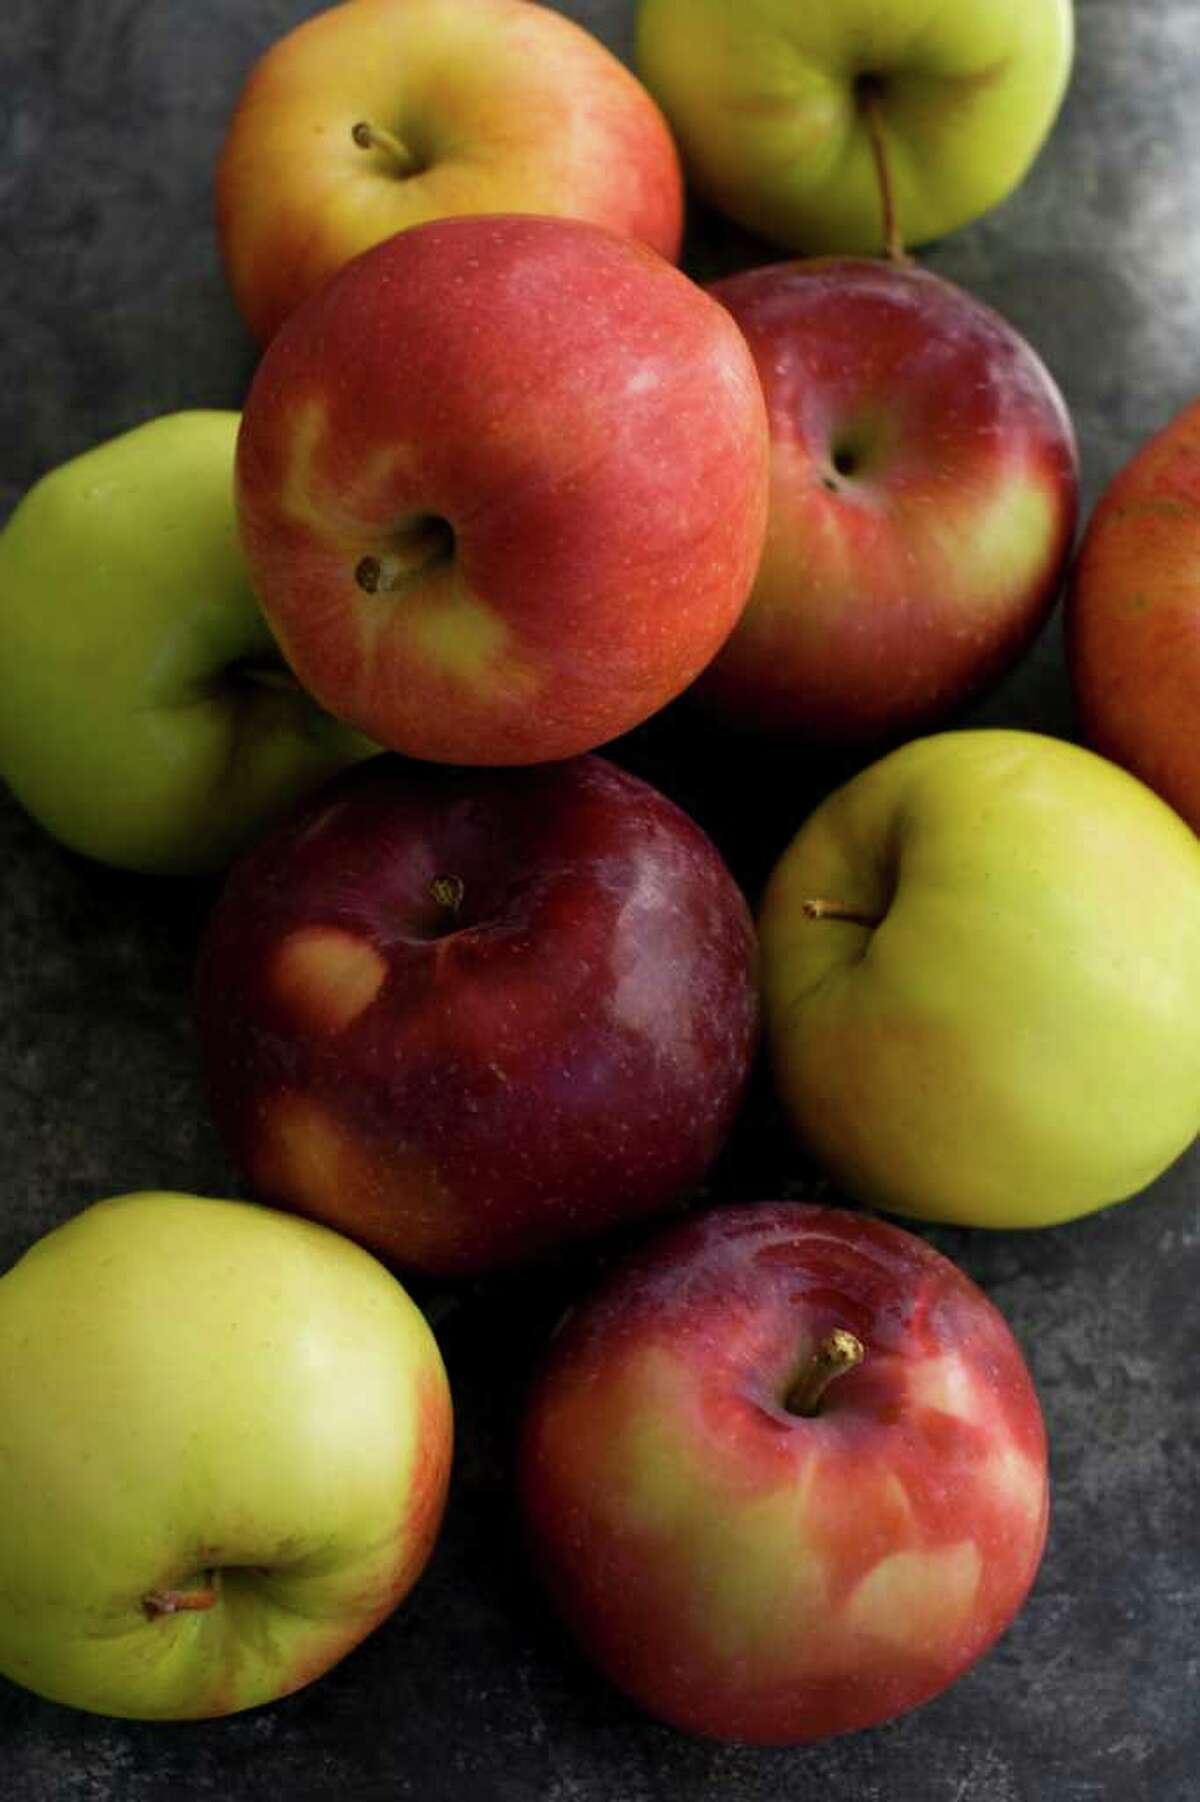 MATTHEW MEAD : ASSOCIATED PRESS quality display: From apple pie to the applesauce that accompanies everything from pork chops to latkes, apples always have a place at the table.